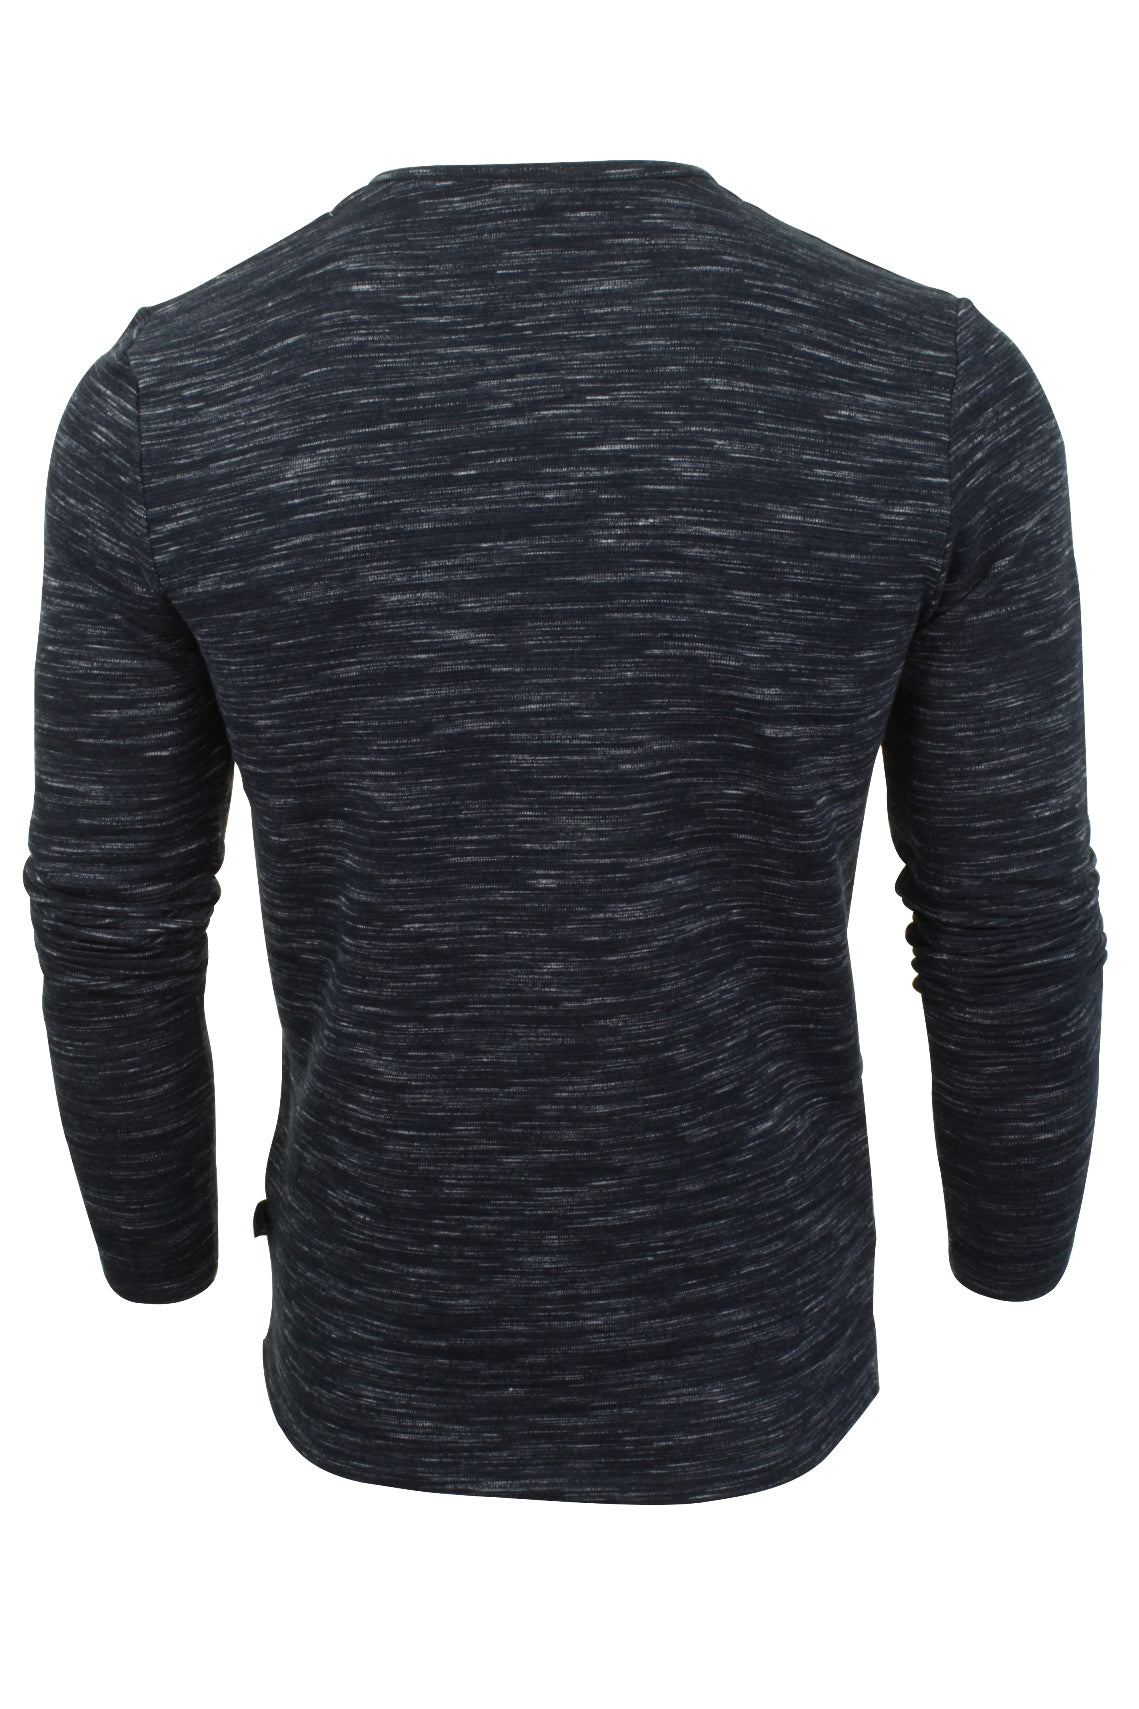 Mens Long Sleeved T-Shirt by Dissident 'Benzon'-3